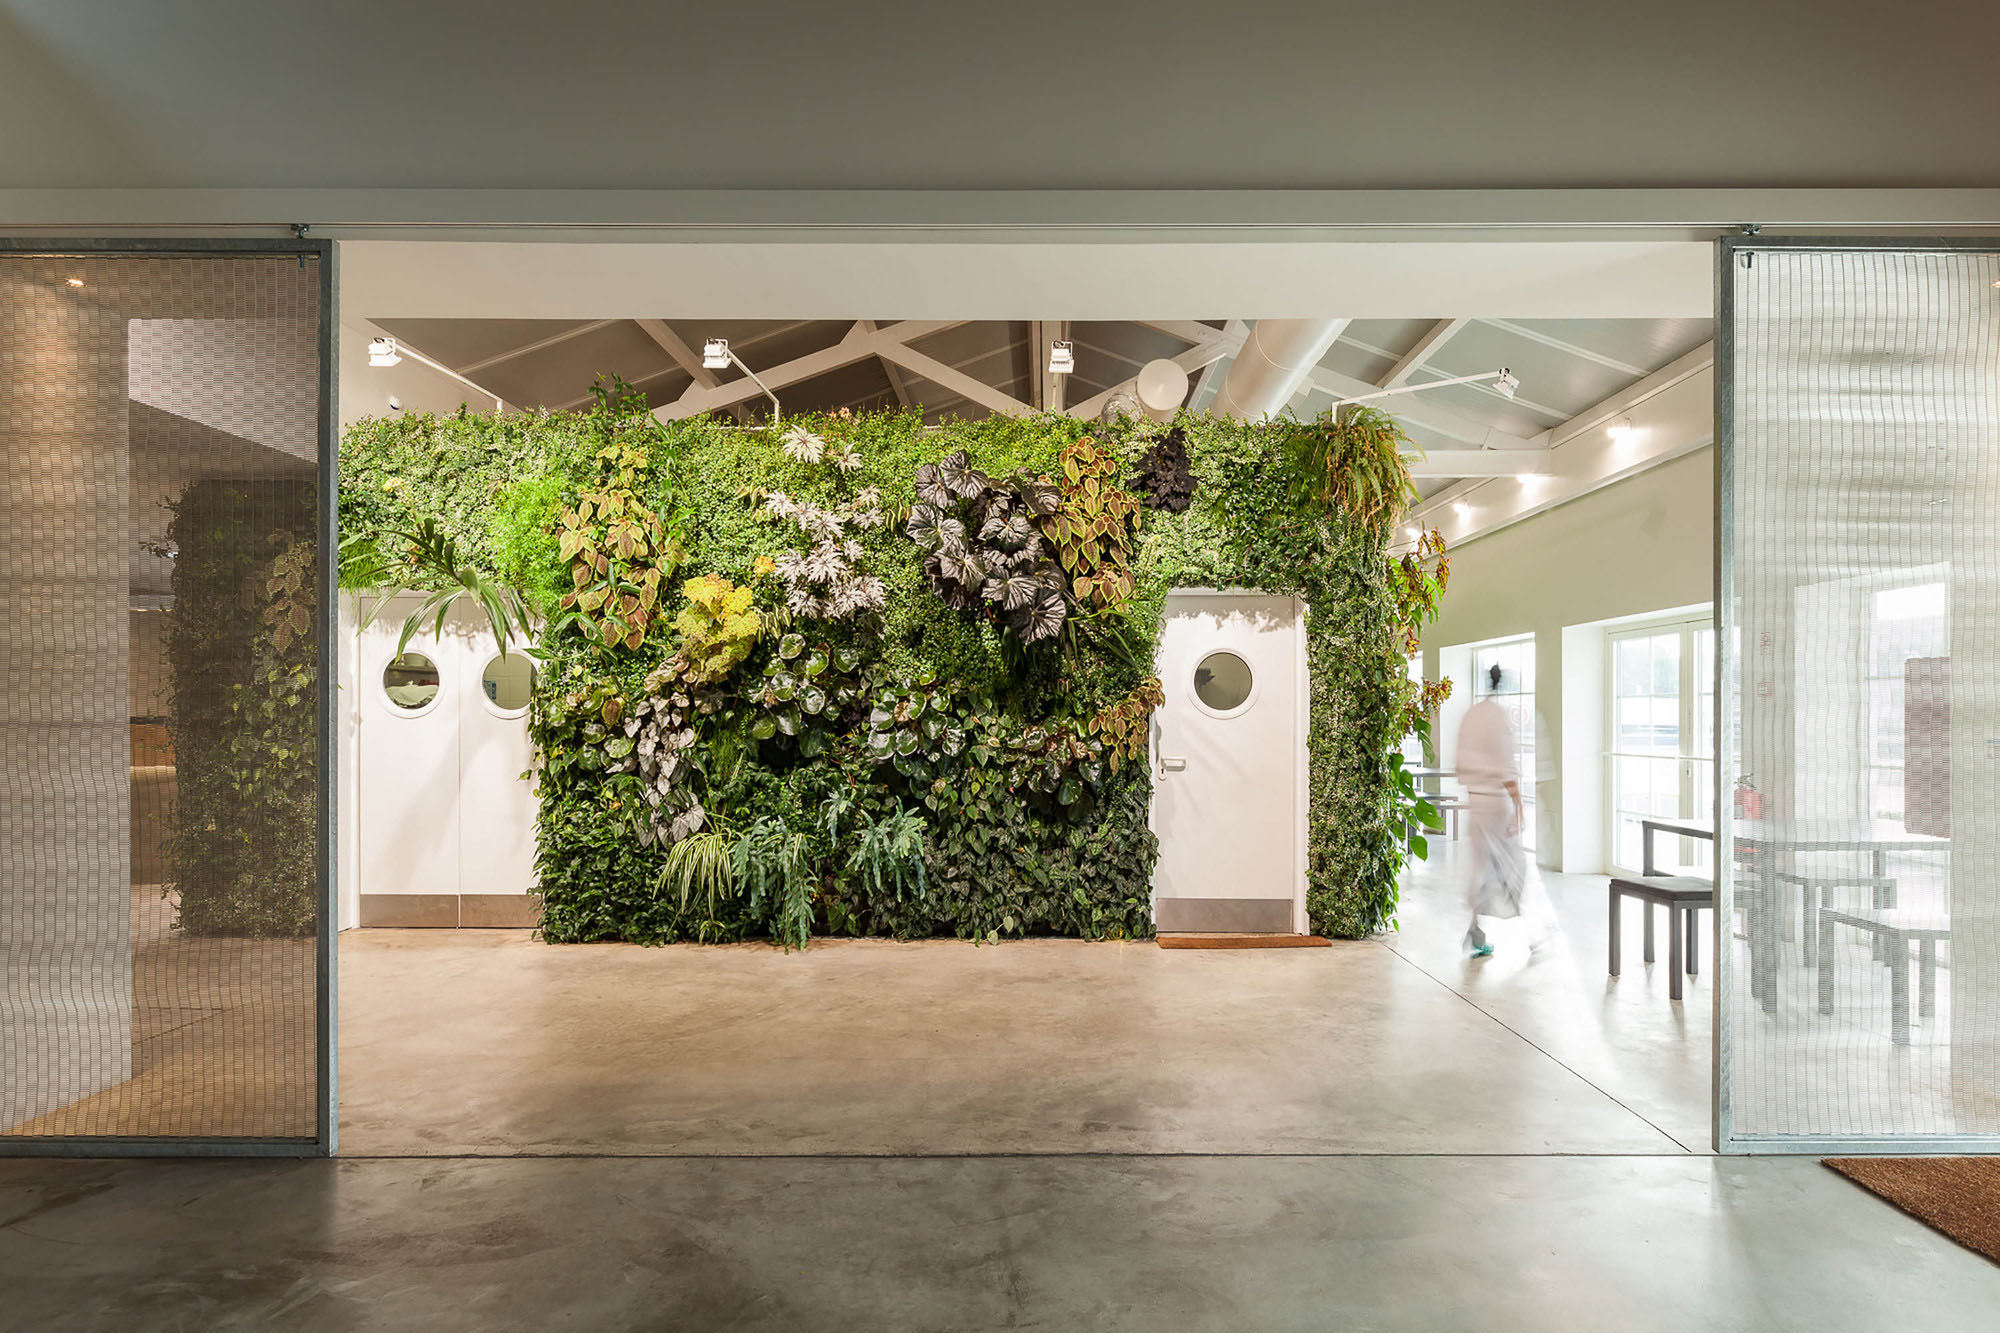 Thick living green wall inside an eatery surrounding the kitchen doors.